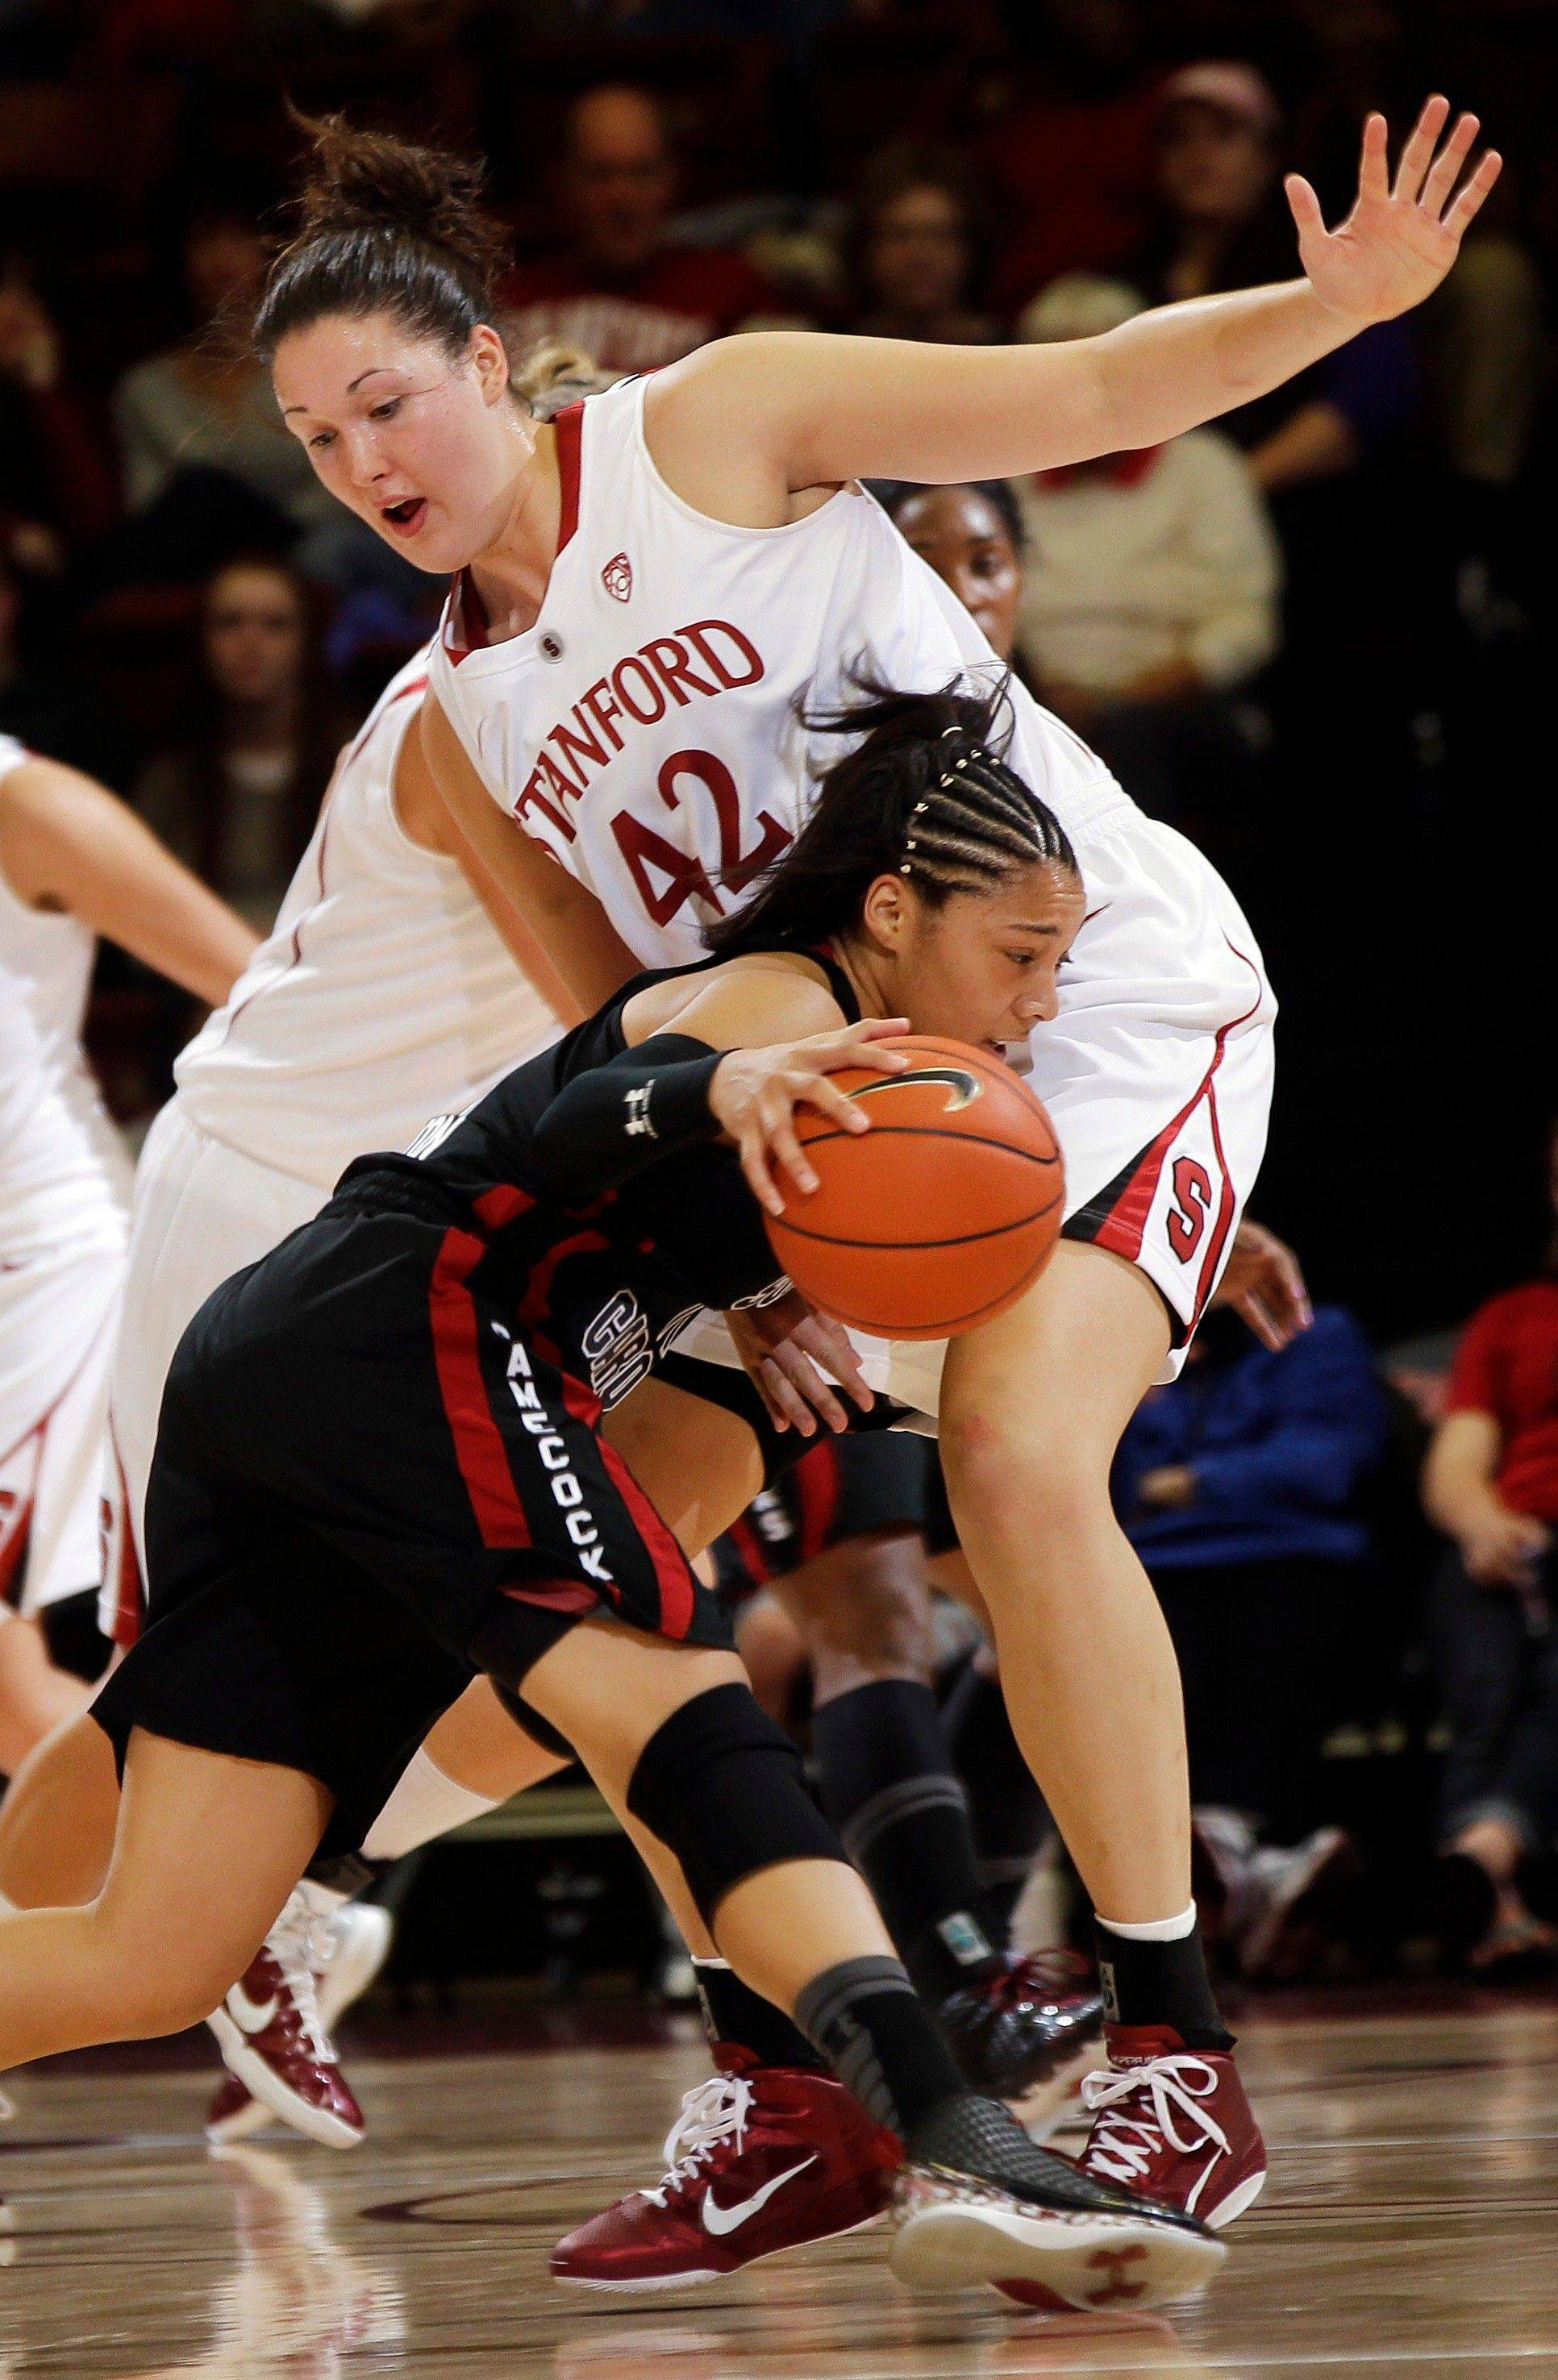 South Carolina guard La'Keisha Sutton tries to dribble around Stanford forward Sarah Boothe, a red-shirt sophomore who is averaging 8 points and 5 rebounds for the Cardinal.